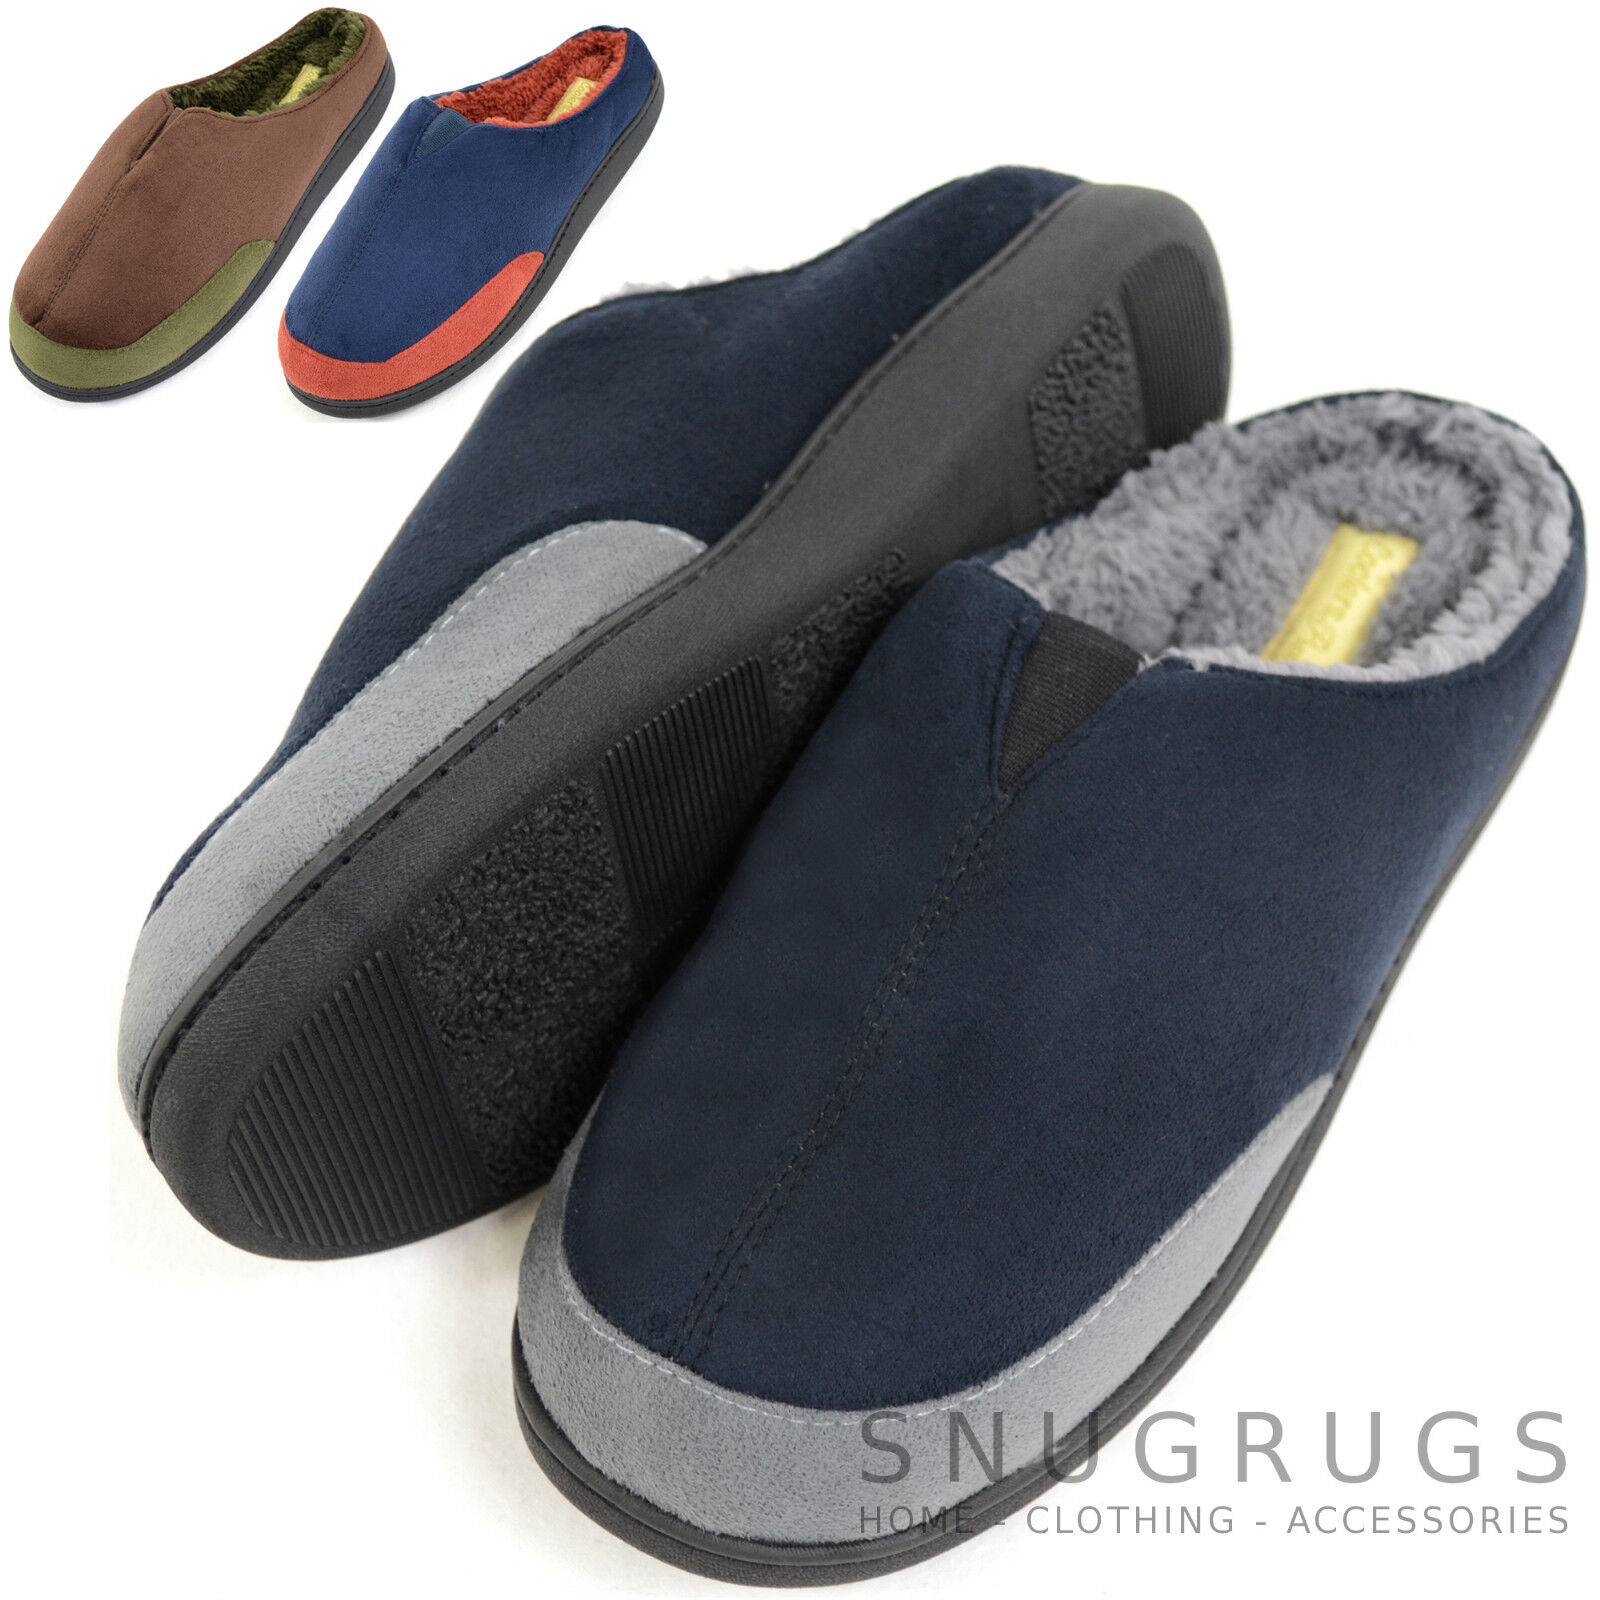 Hombre Microsuede Slip On Mules / Slippers with Lining Warm Micro Fleece Lining with d9ba7f